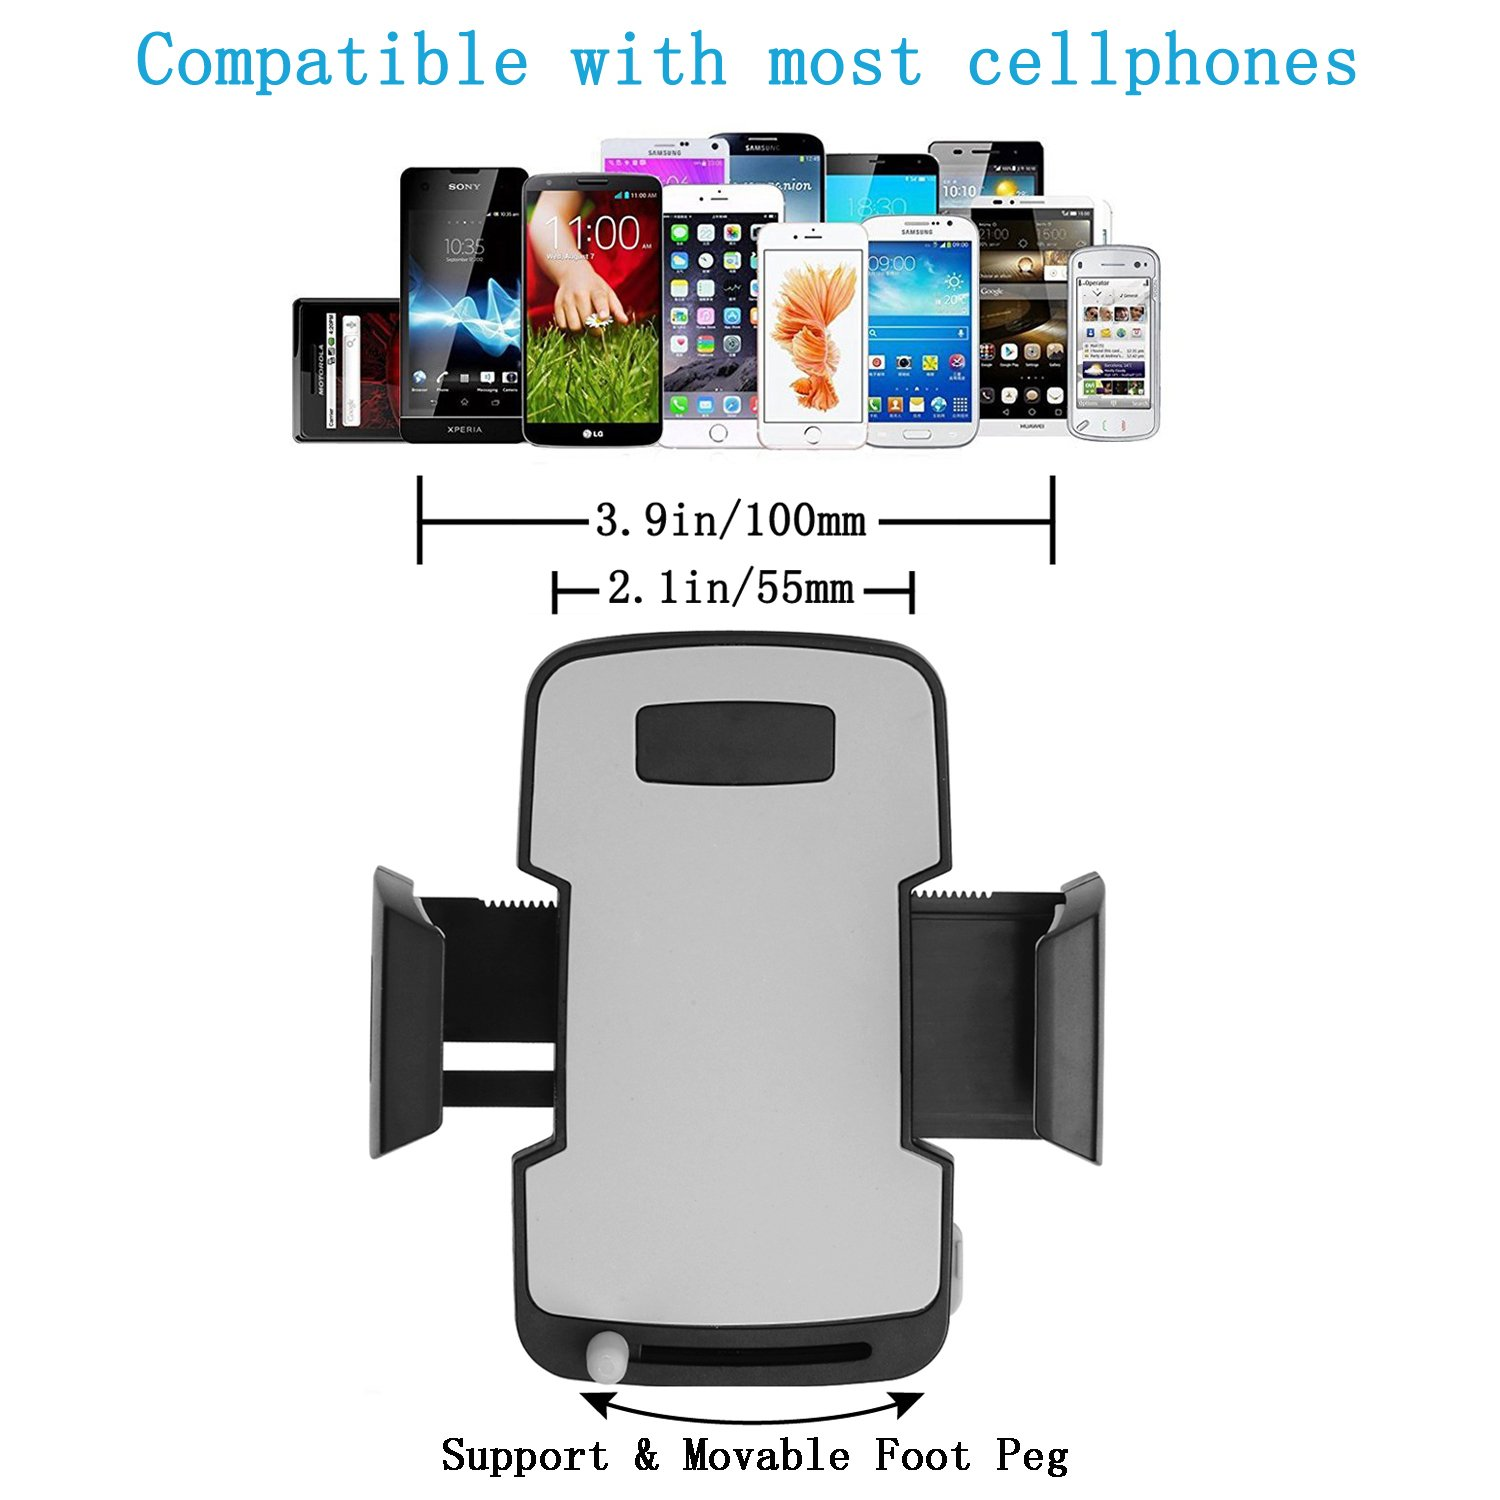 Upgrade Version Car Mount HANA Universal Flexible Long Arm Windshield Dashboard Car Mount Holder Cradle with Adjustable Clamp and Circular Dashboard Base for All Smartphones 3.5-6.0 inches 4326593356